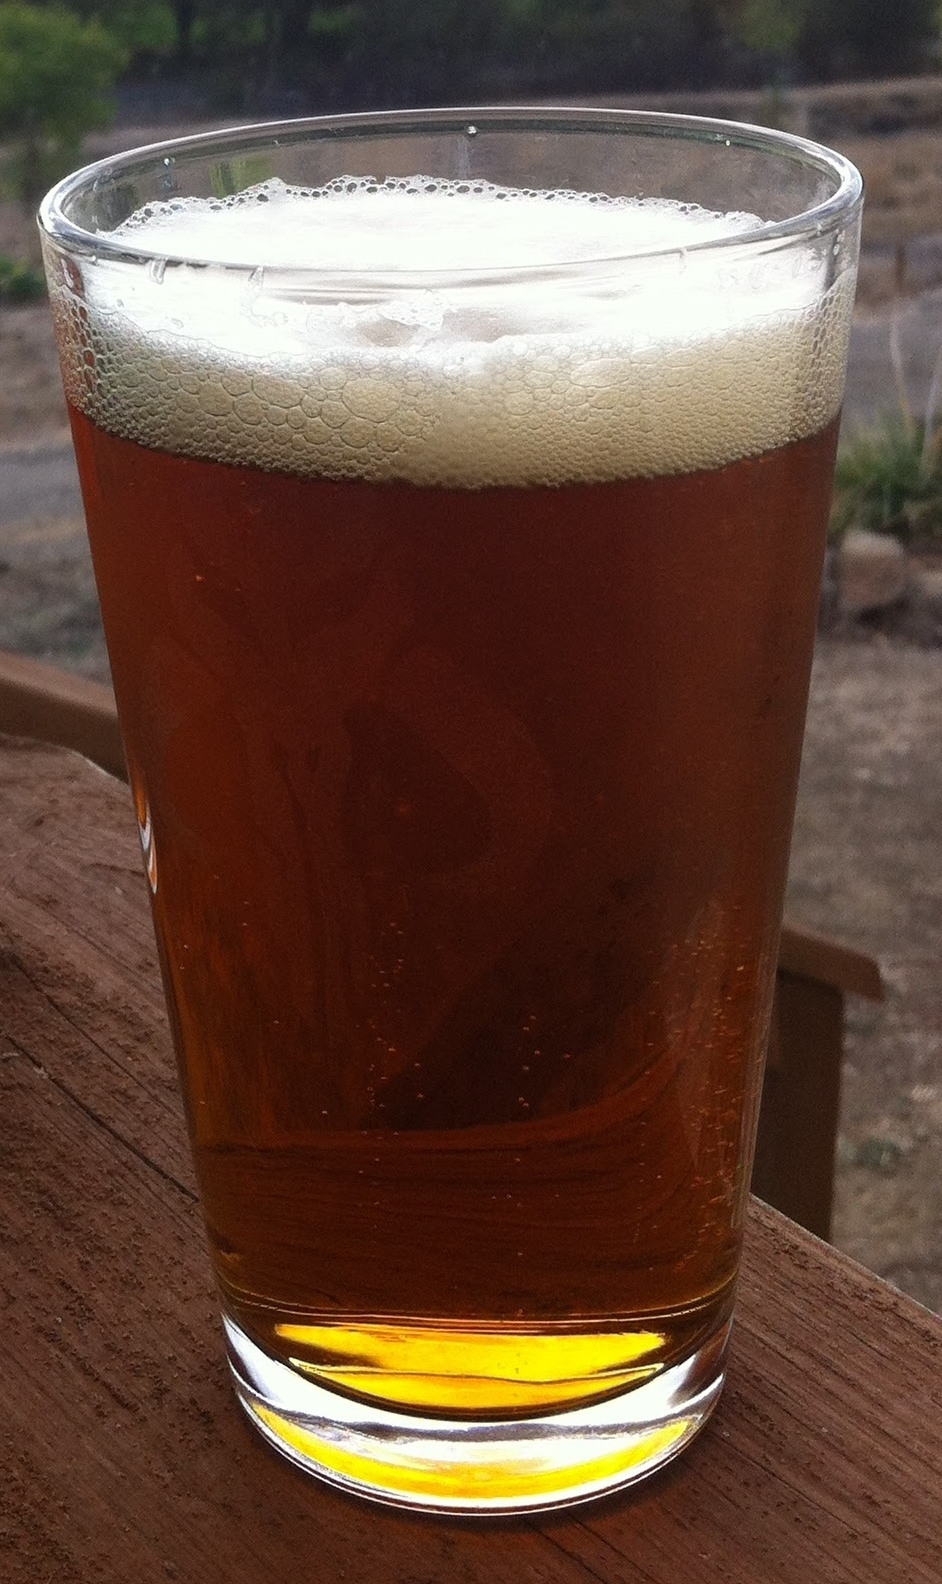 Hoppy Copper IPA - Fresh and Bold, Crisp and Refreshing. Taste it and tells us what you think. We'll add it to the description.We're not afraid. It's our Customers who count, so it should be their words in these descriptions. :)